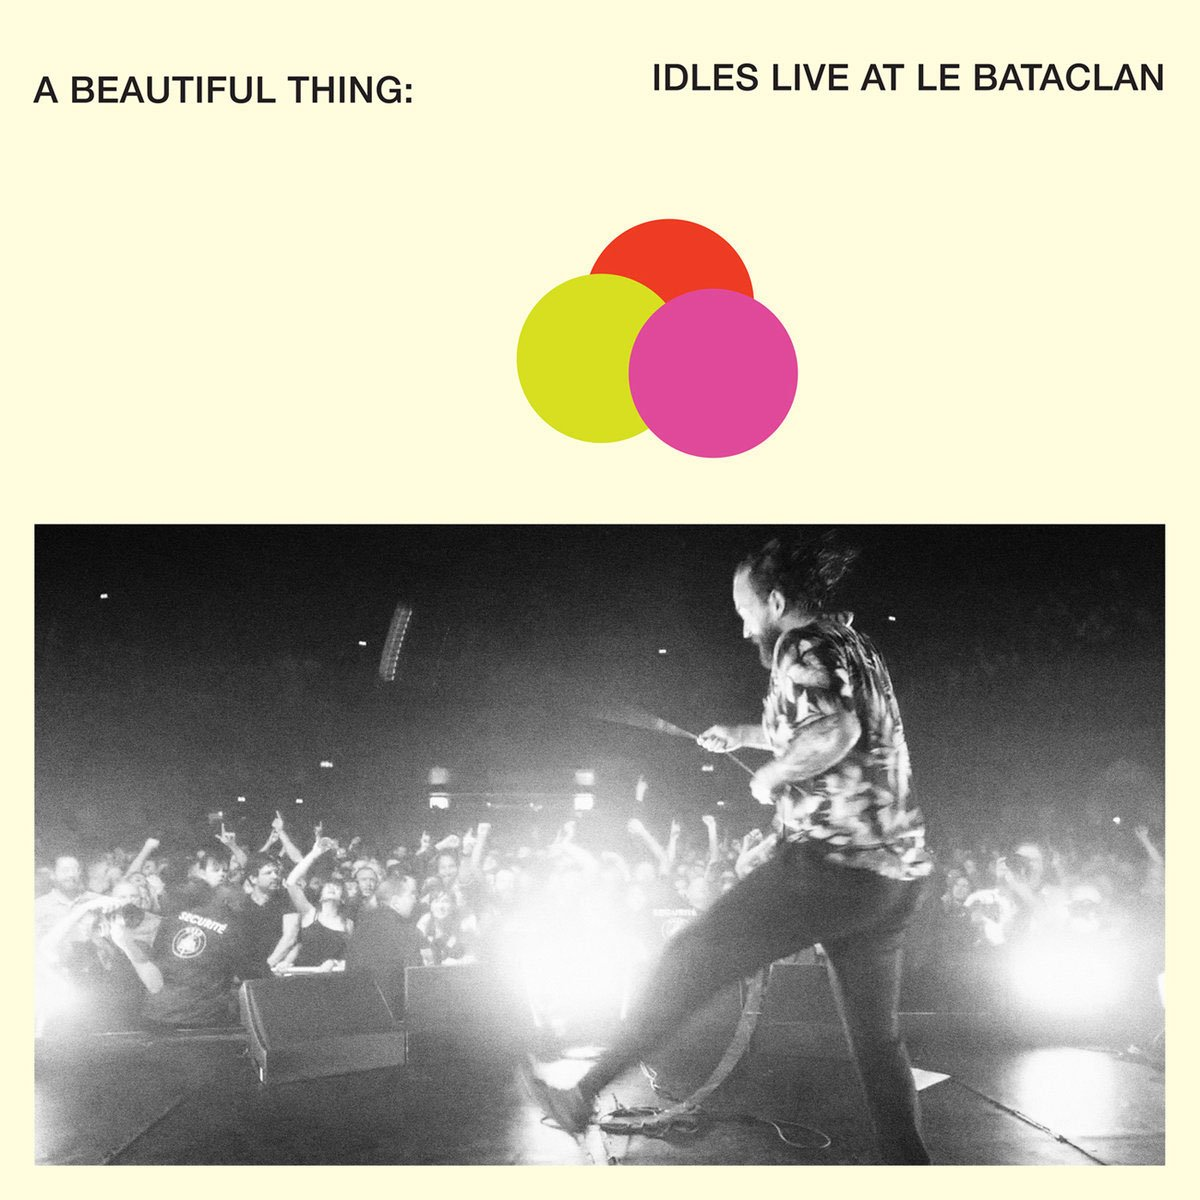 ALBUM REVIEW: IDLES - A Beautiful Thing: Live at Le Bataclan